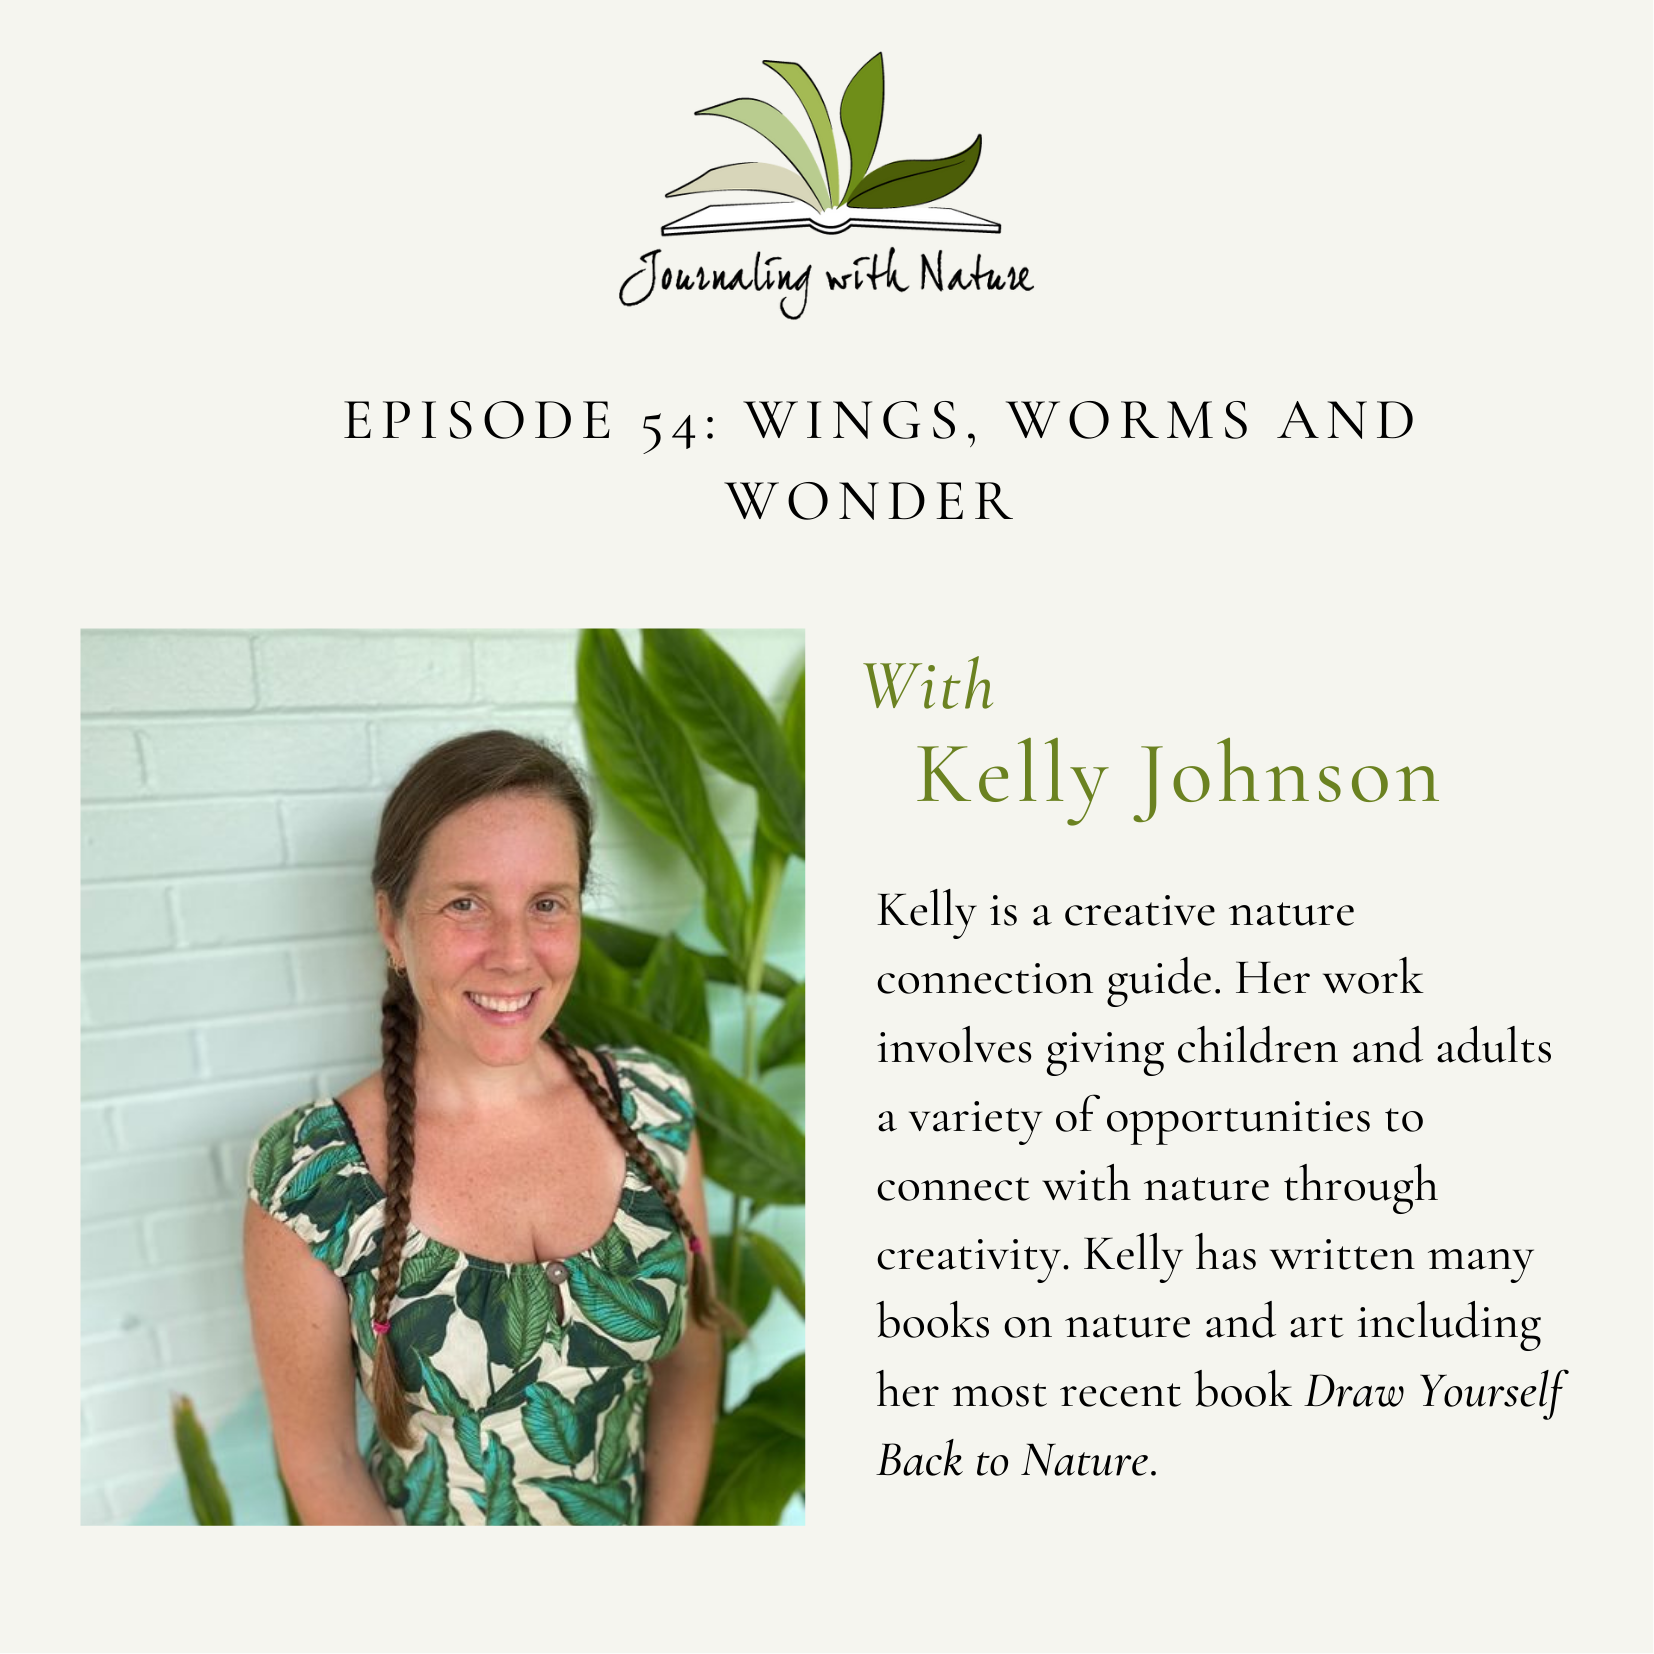 Gather lots of ideas and inspiration in this podcast chat on the Journaling With Nature Podcast! Click to listen!